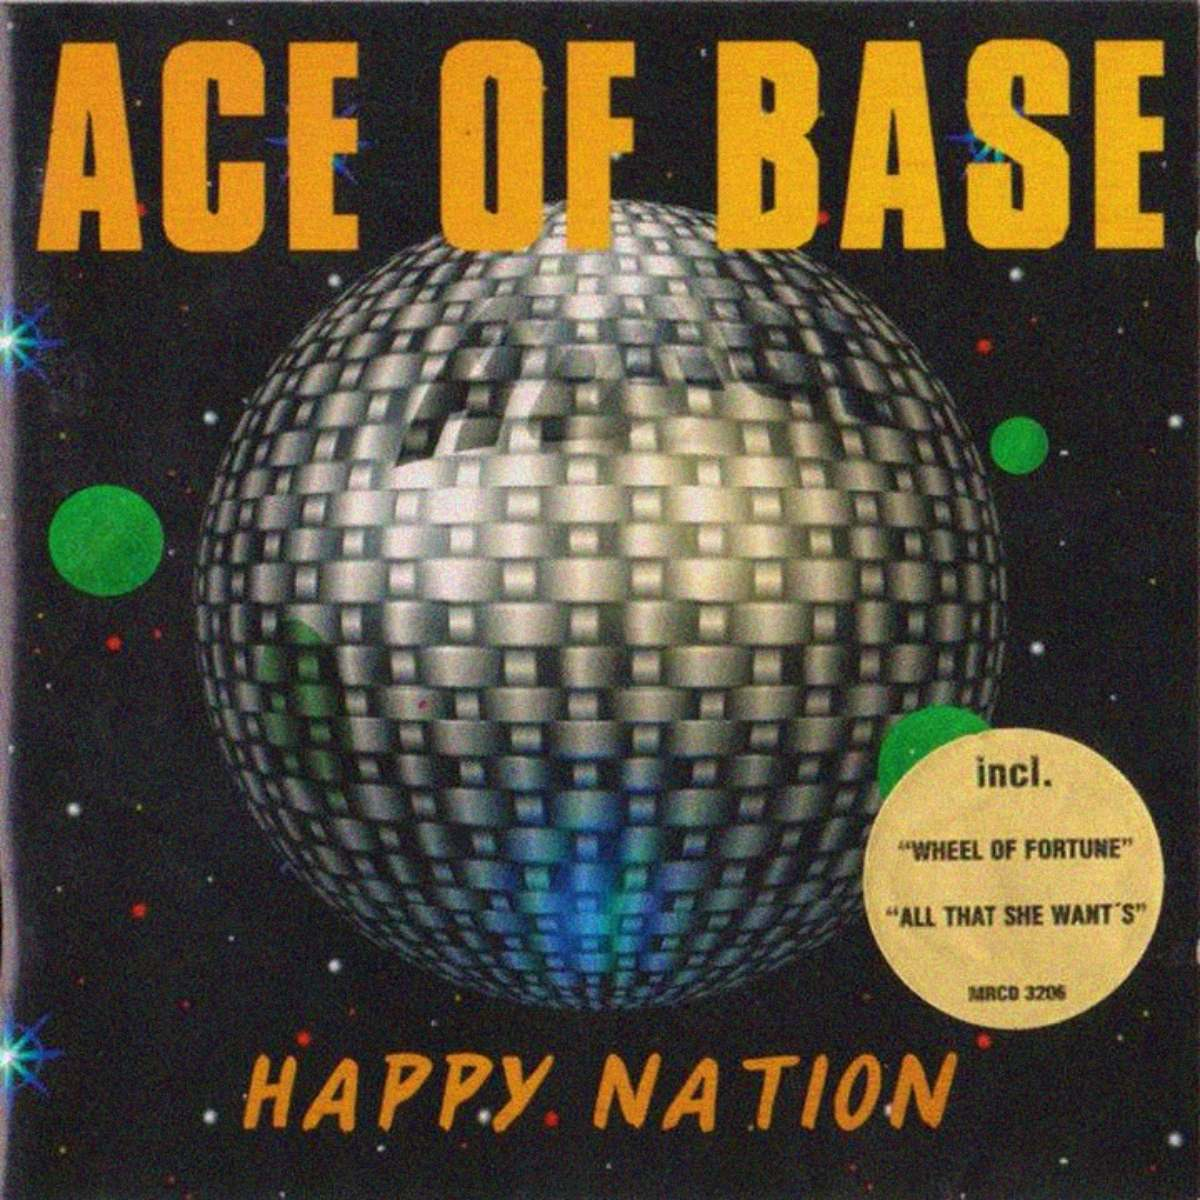 Happy Nation (альбом Ace Of Base)